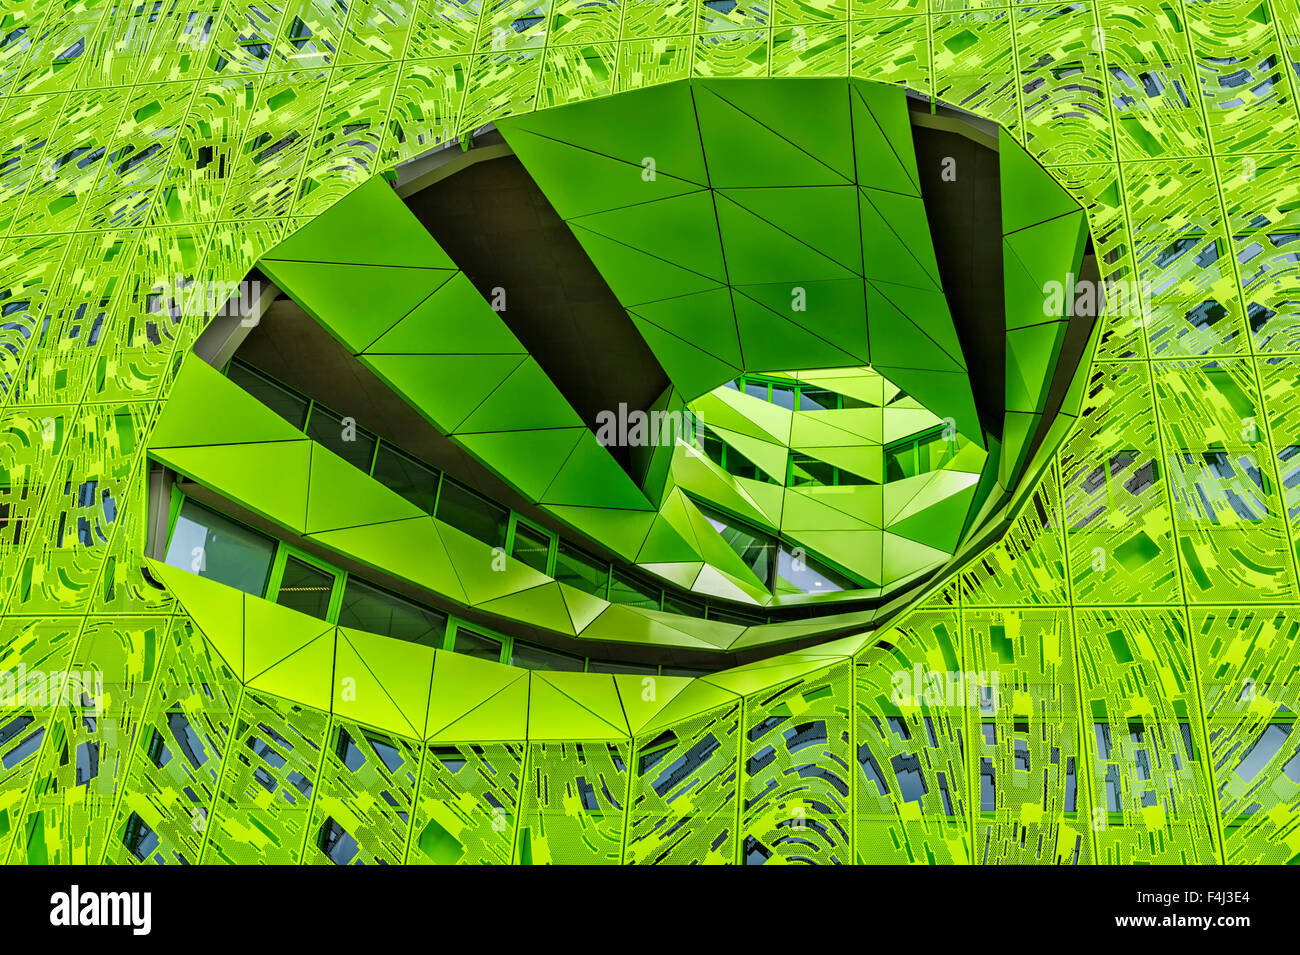 Green Cube, Headquarters of television channel Euronews, La Confluence district, Lyon, Rhone, France, Europe - Stock Image